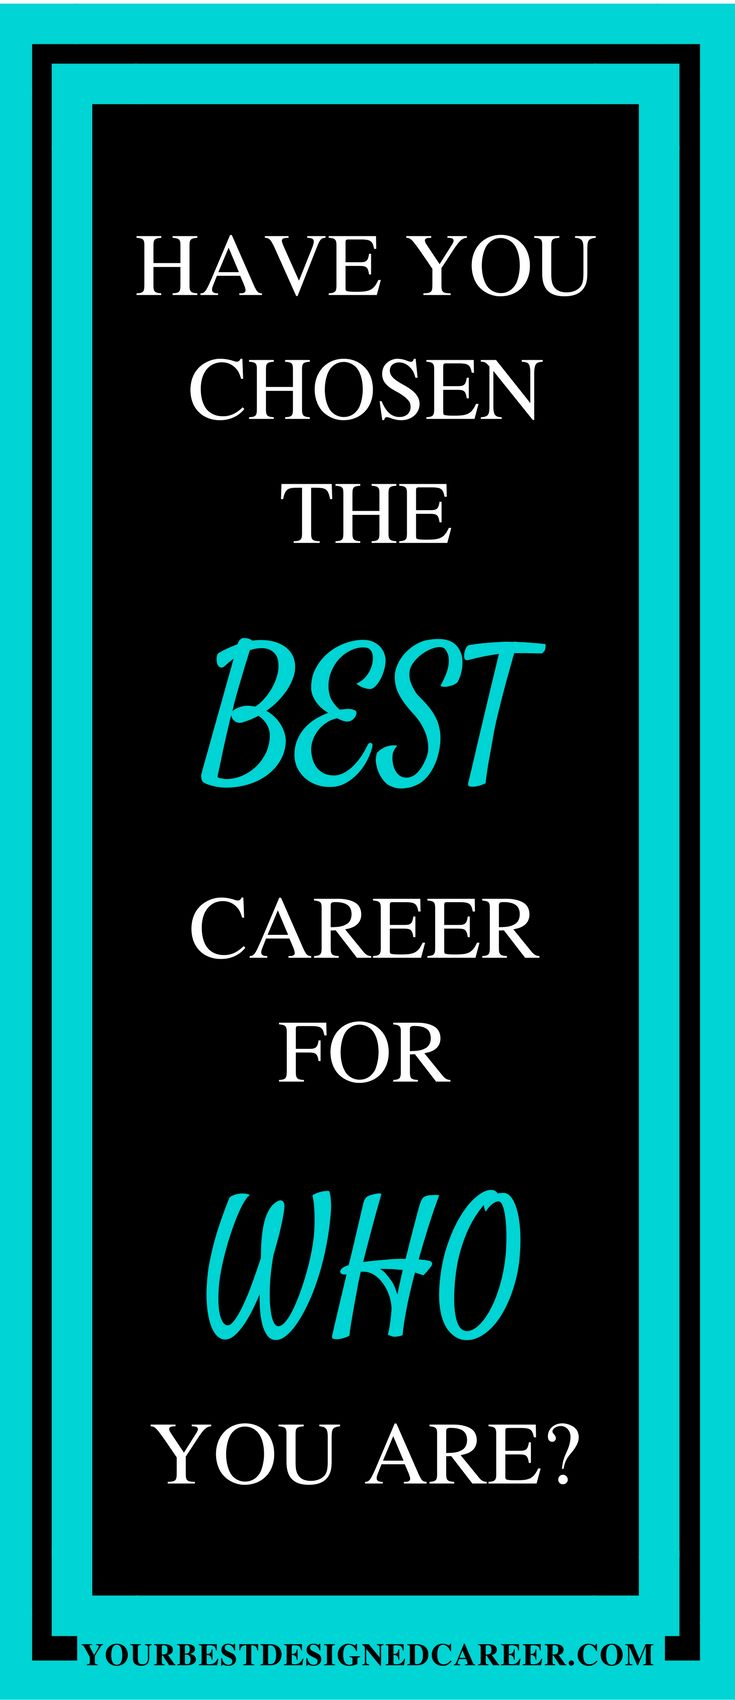 Beautiful If Youu0027re Looking For A Career Change Or To Jumpstart Your Career, Youu0027re  In The Right Place. Here Youu0027ll Find Tips And Inspiration For Your Career.